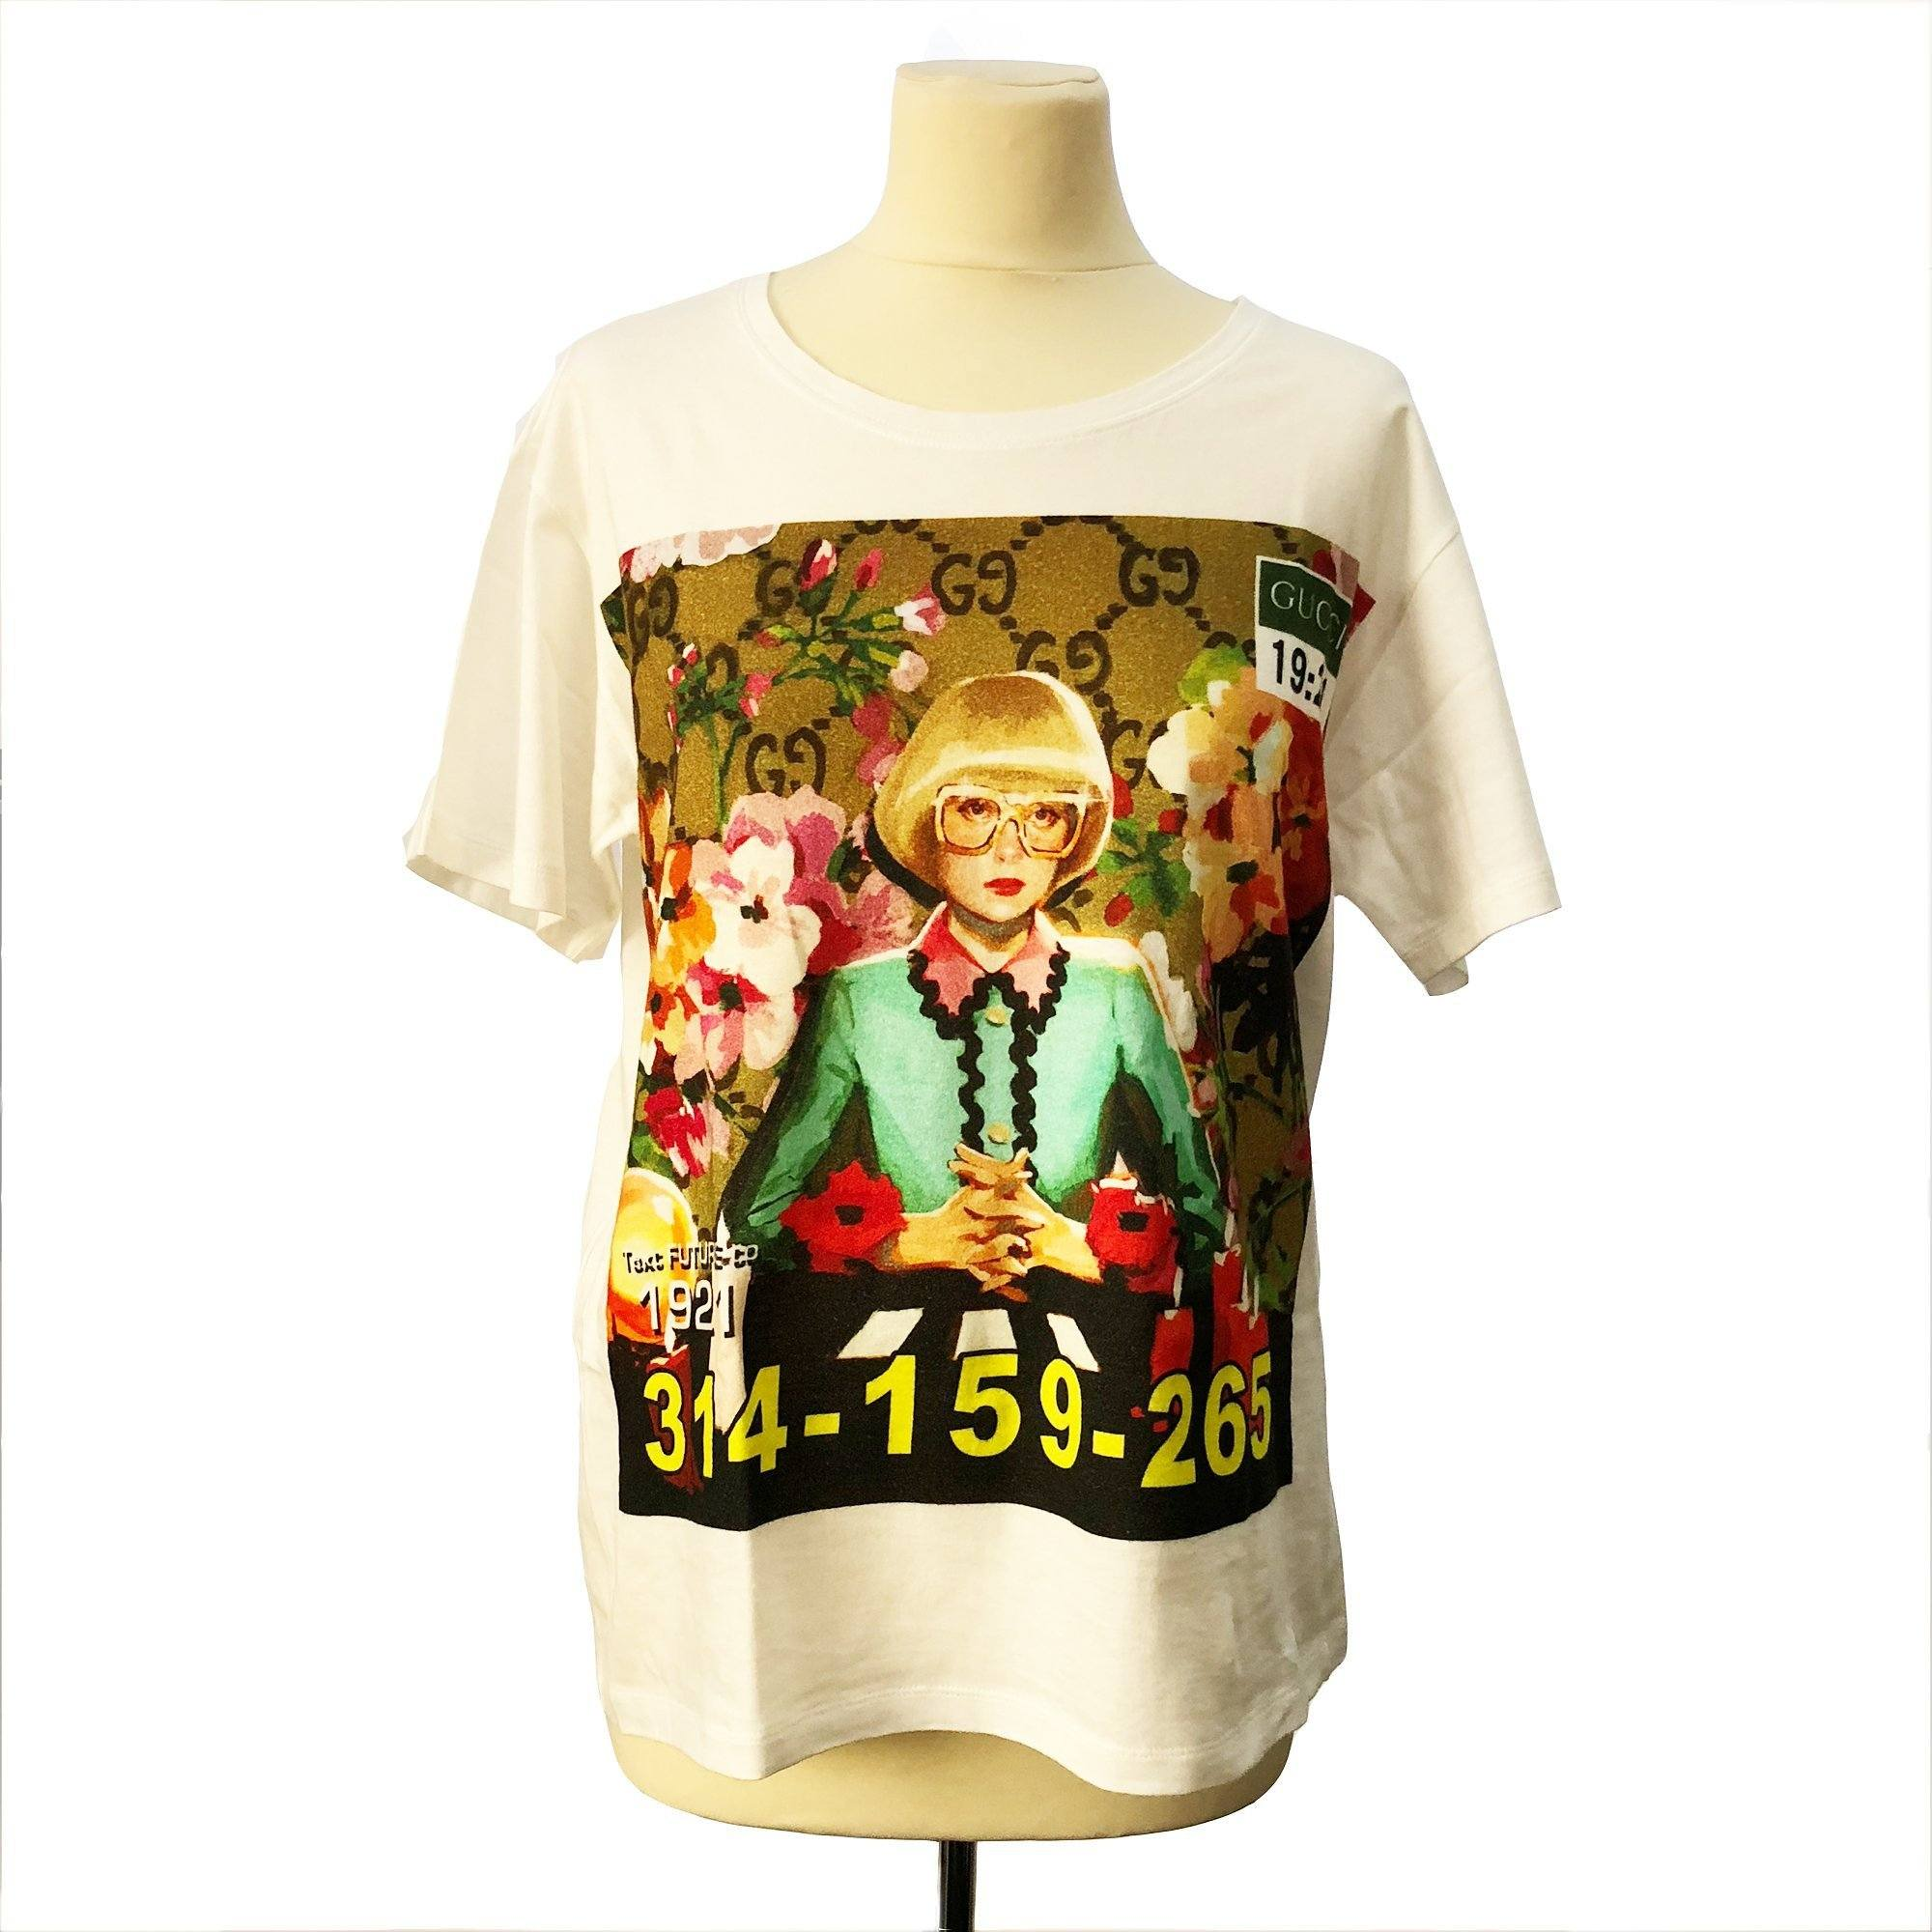 Gucci 1921 Printed Cotton T-shirt